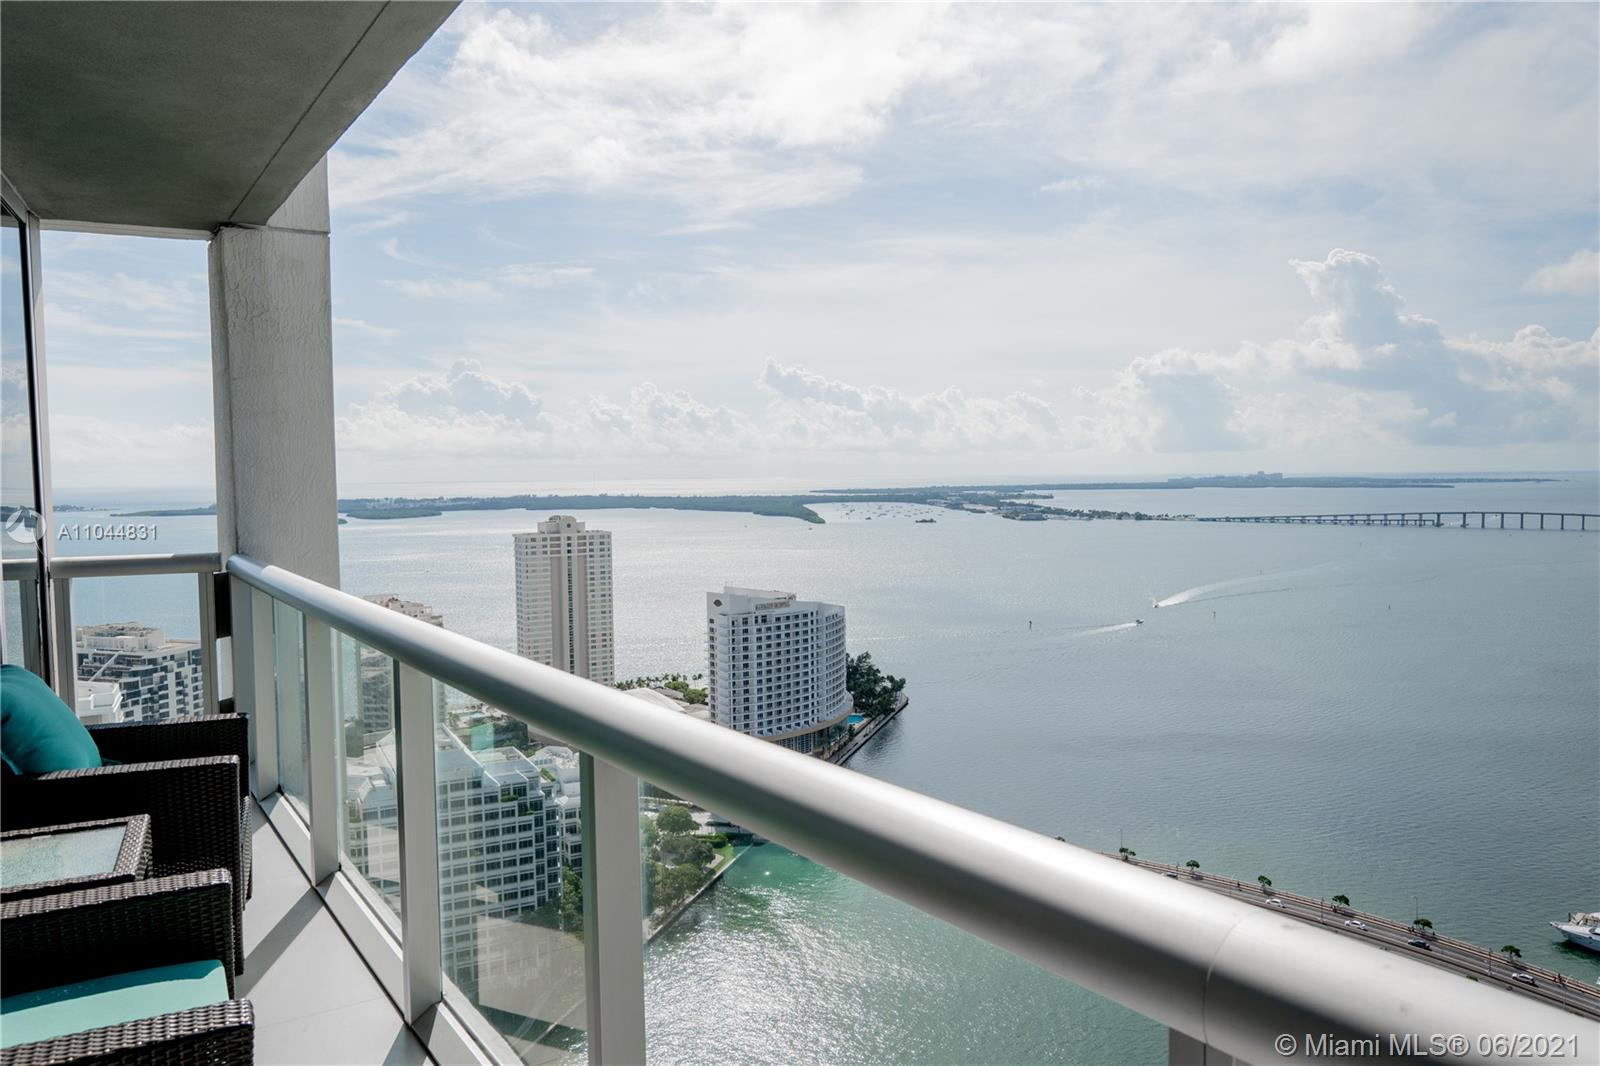 Highly sought after corner unit with breath taking views of the bay, downtown & the surrounding islands! Fully upgraded with unique designer finishes & top of the line details throughout. Carrara marble counters, custom LED lighting, mosaic tiling & marble walls & built-in sound system. This spacious unit comes with 2 parking spots and the building offers full service amenities: Spa & fitness center, recently renovated pool deck (All assessments paid in full), 24/7 Concierge/Valet. Steps from Brickell City Centre, Supermarkets, cafes, some of the best restaurants and bars/rooftops Miami has to offer and only 15 min ride to the airport and 15 min ride to the beach! Can show with short notice.